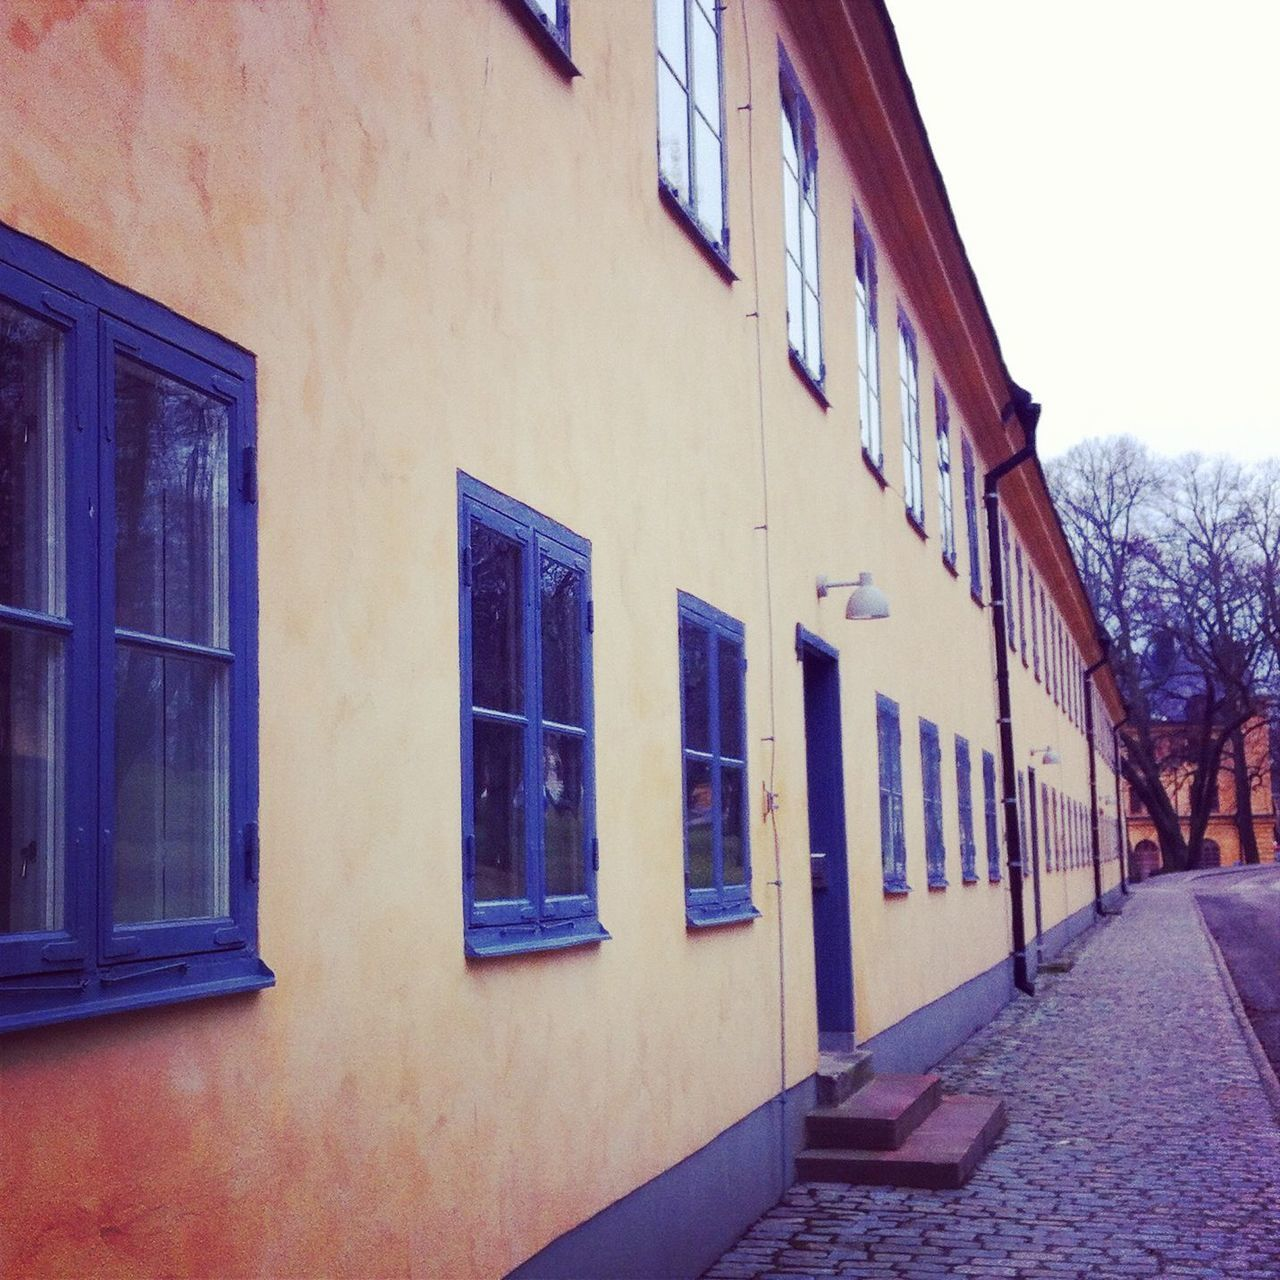 Stockholm Street Architecture Blue Building Building Exterior Built Structure City Day Diminishing Perspective Empty House Narrow No People Outdoors Residential Building Residential Structure Schwedenhaus Sky Stockhom Sweden The Way Forward Yellow